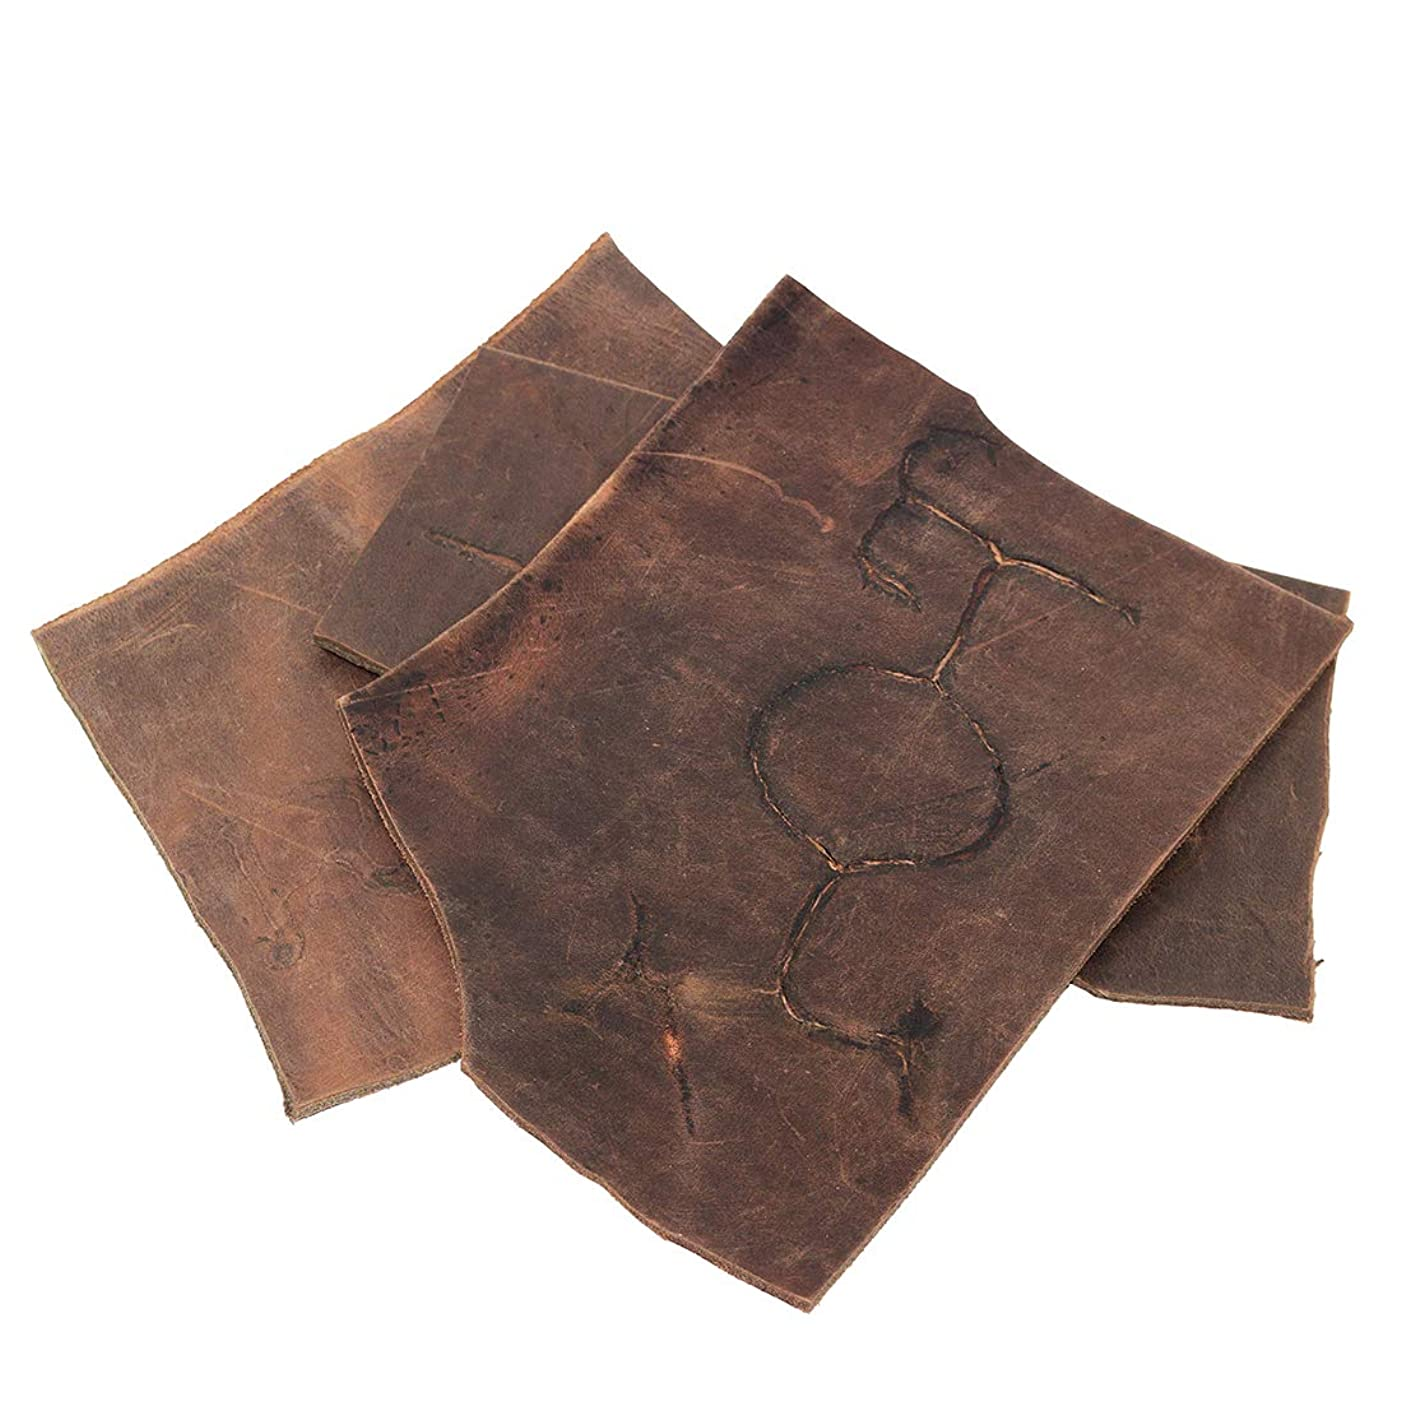 Hide & Drink, Thick Leather Scraps with Scars for Arts & Crafts, 8